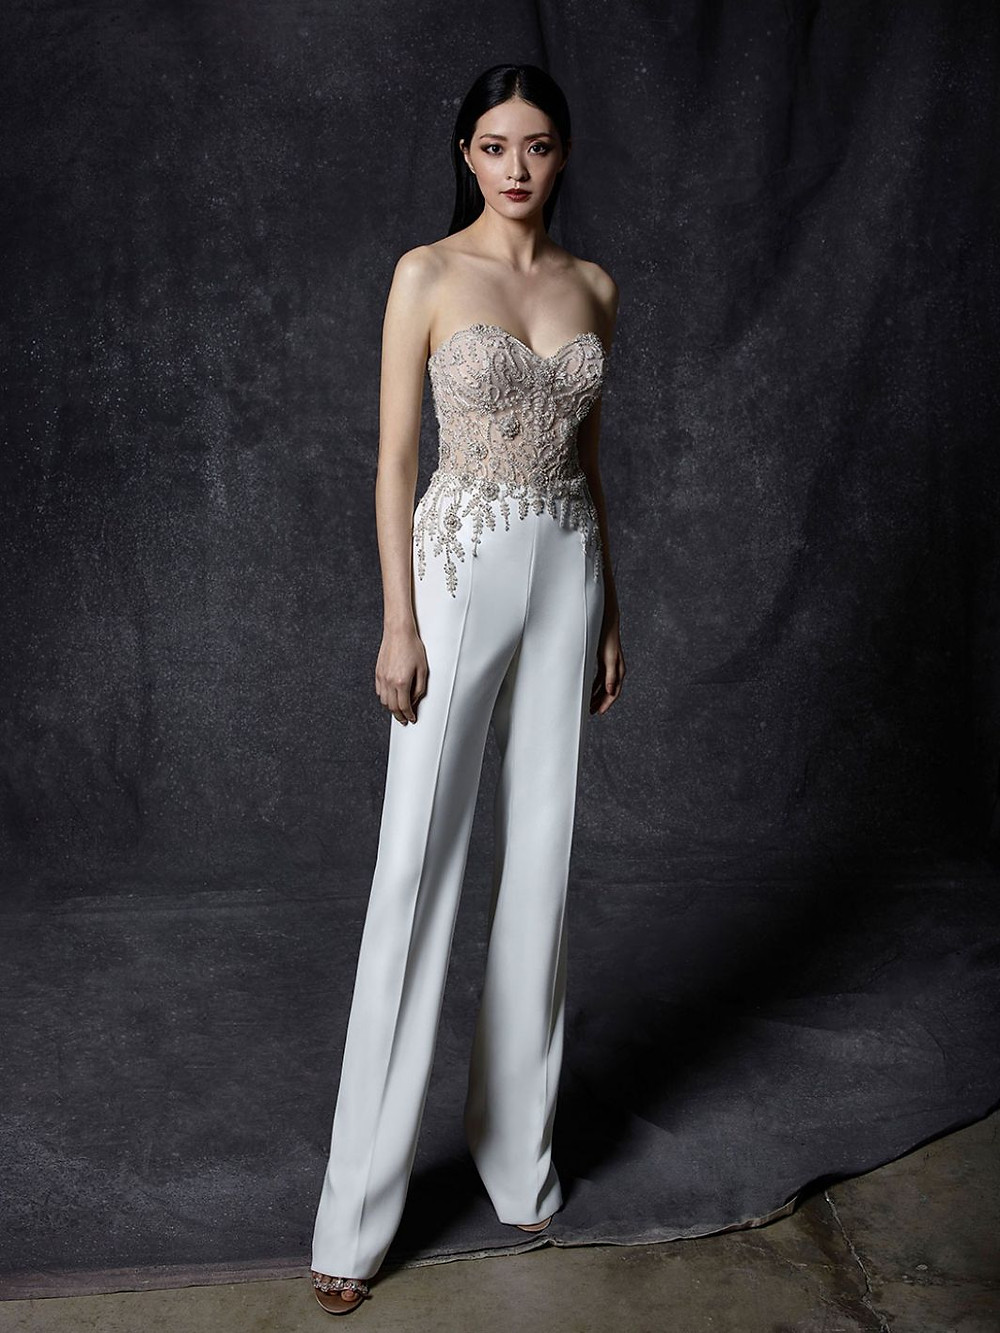 An Enzoani silk wedding jumpsuit with a lace bodice and sweetheart neckline